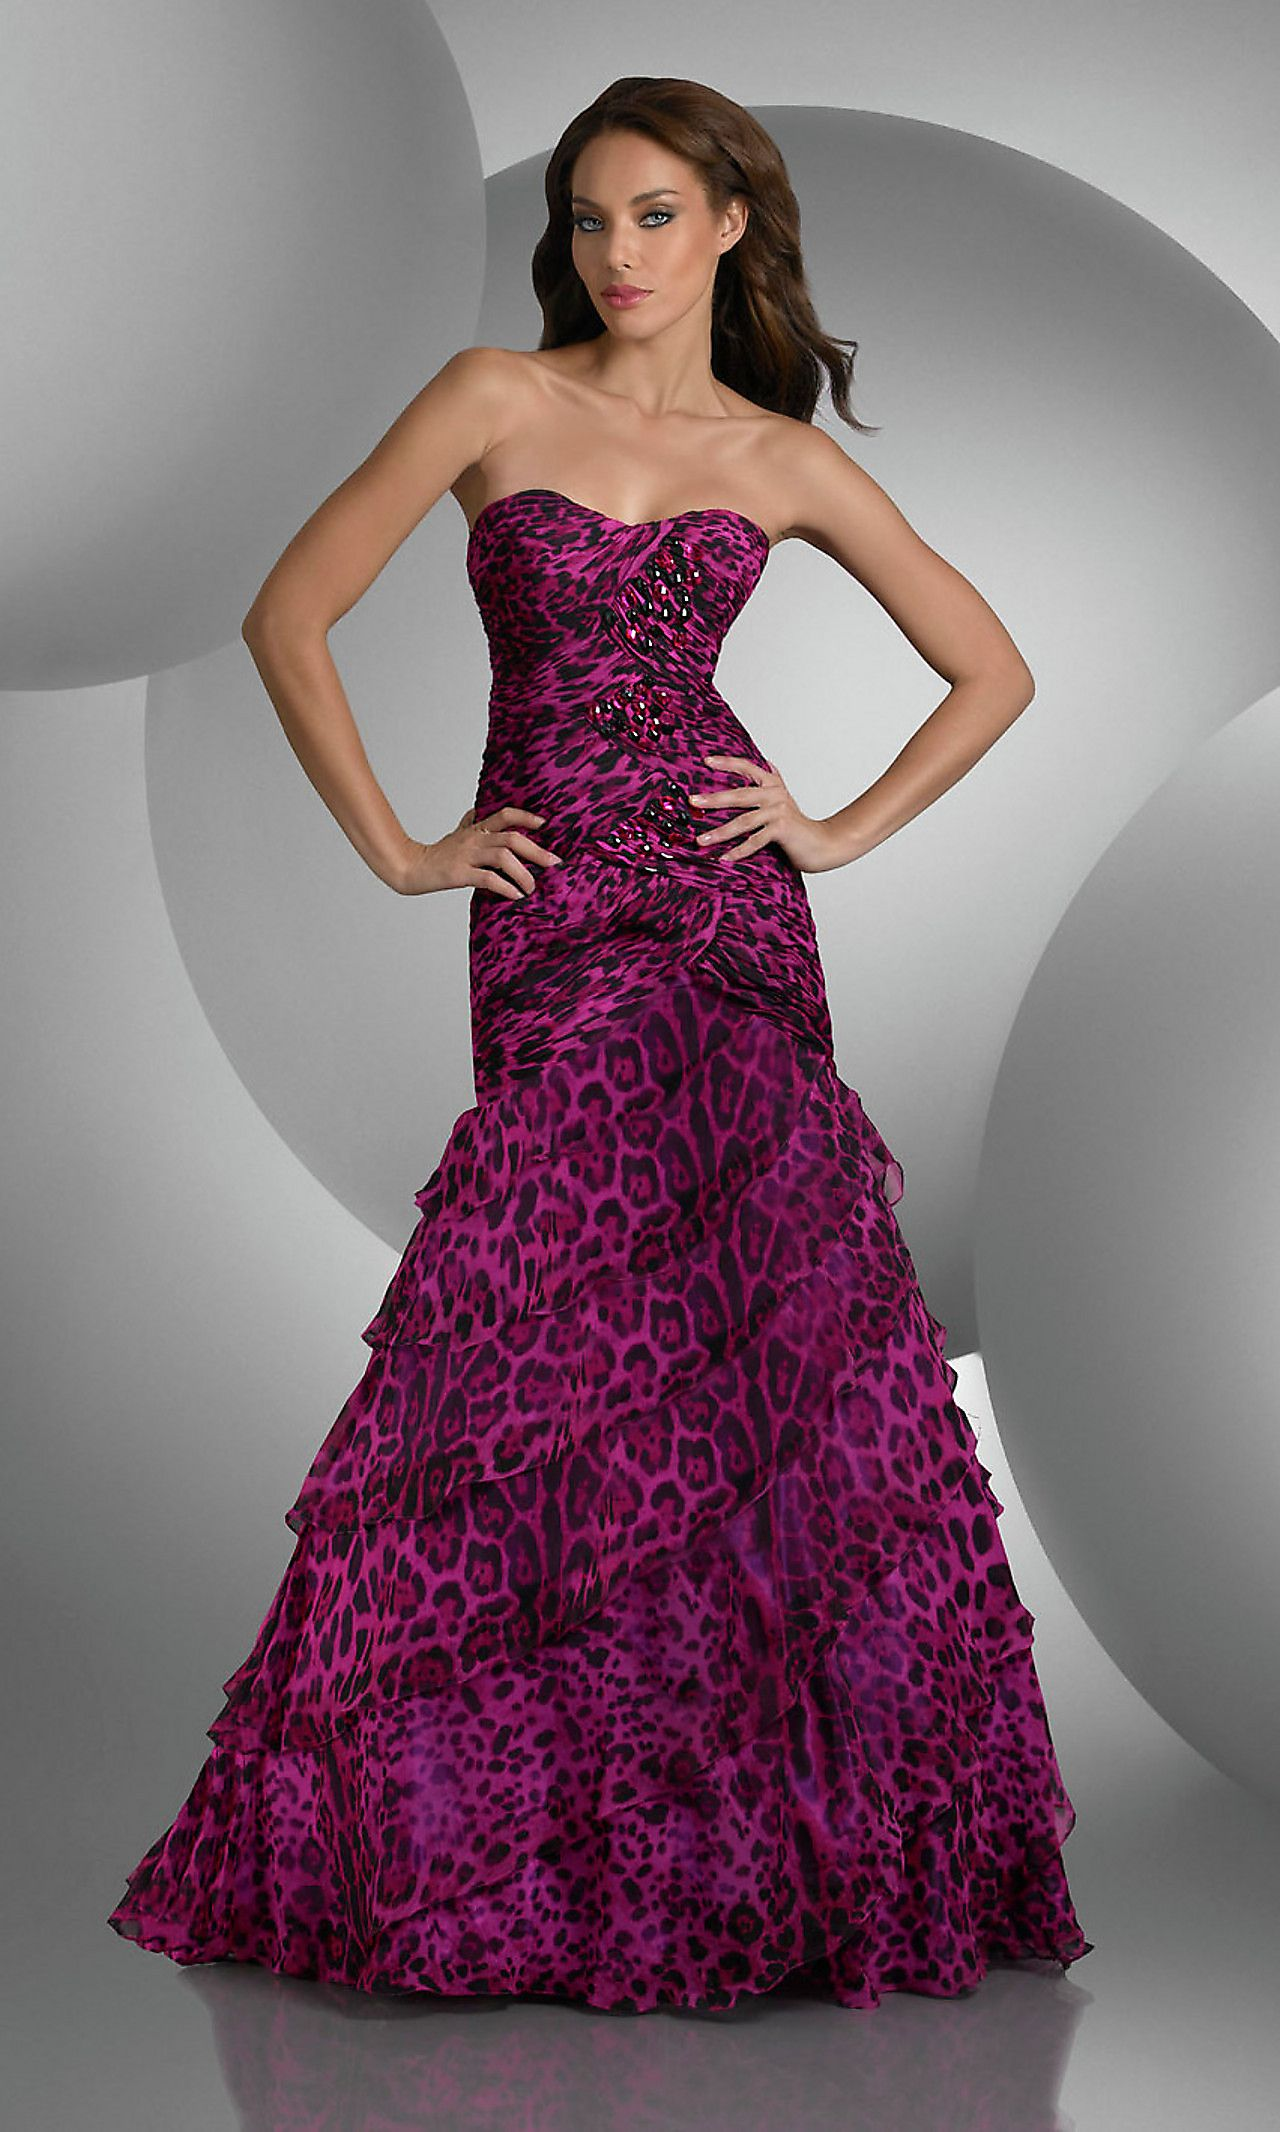 Strapless Animal Print Prom Gown by Bari Jay | All About Animal ...